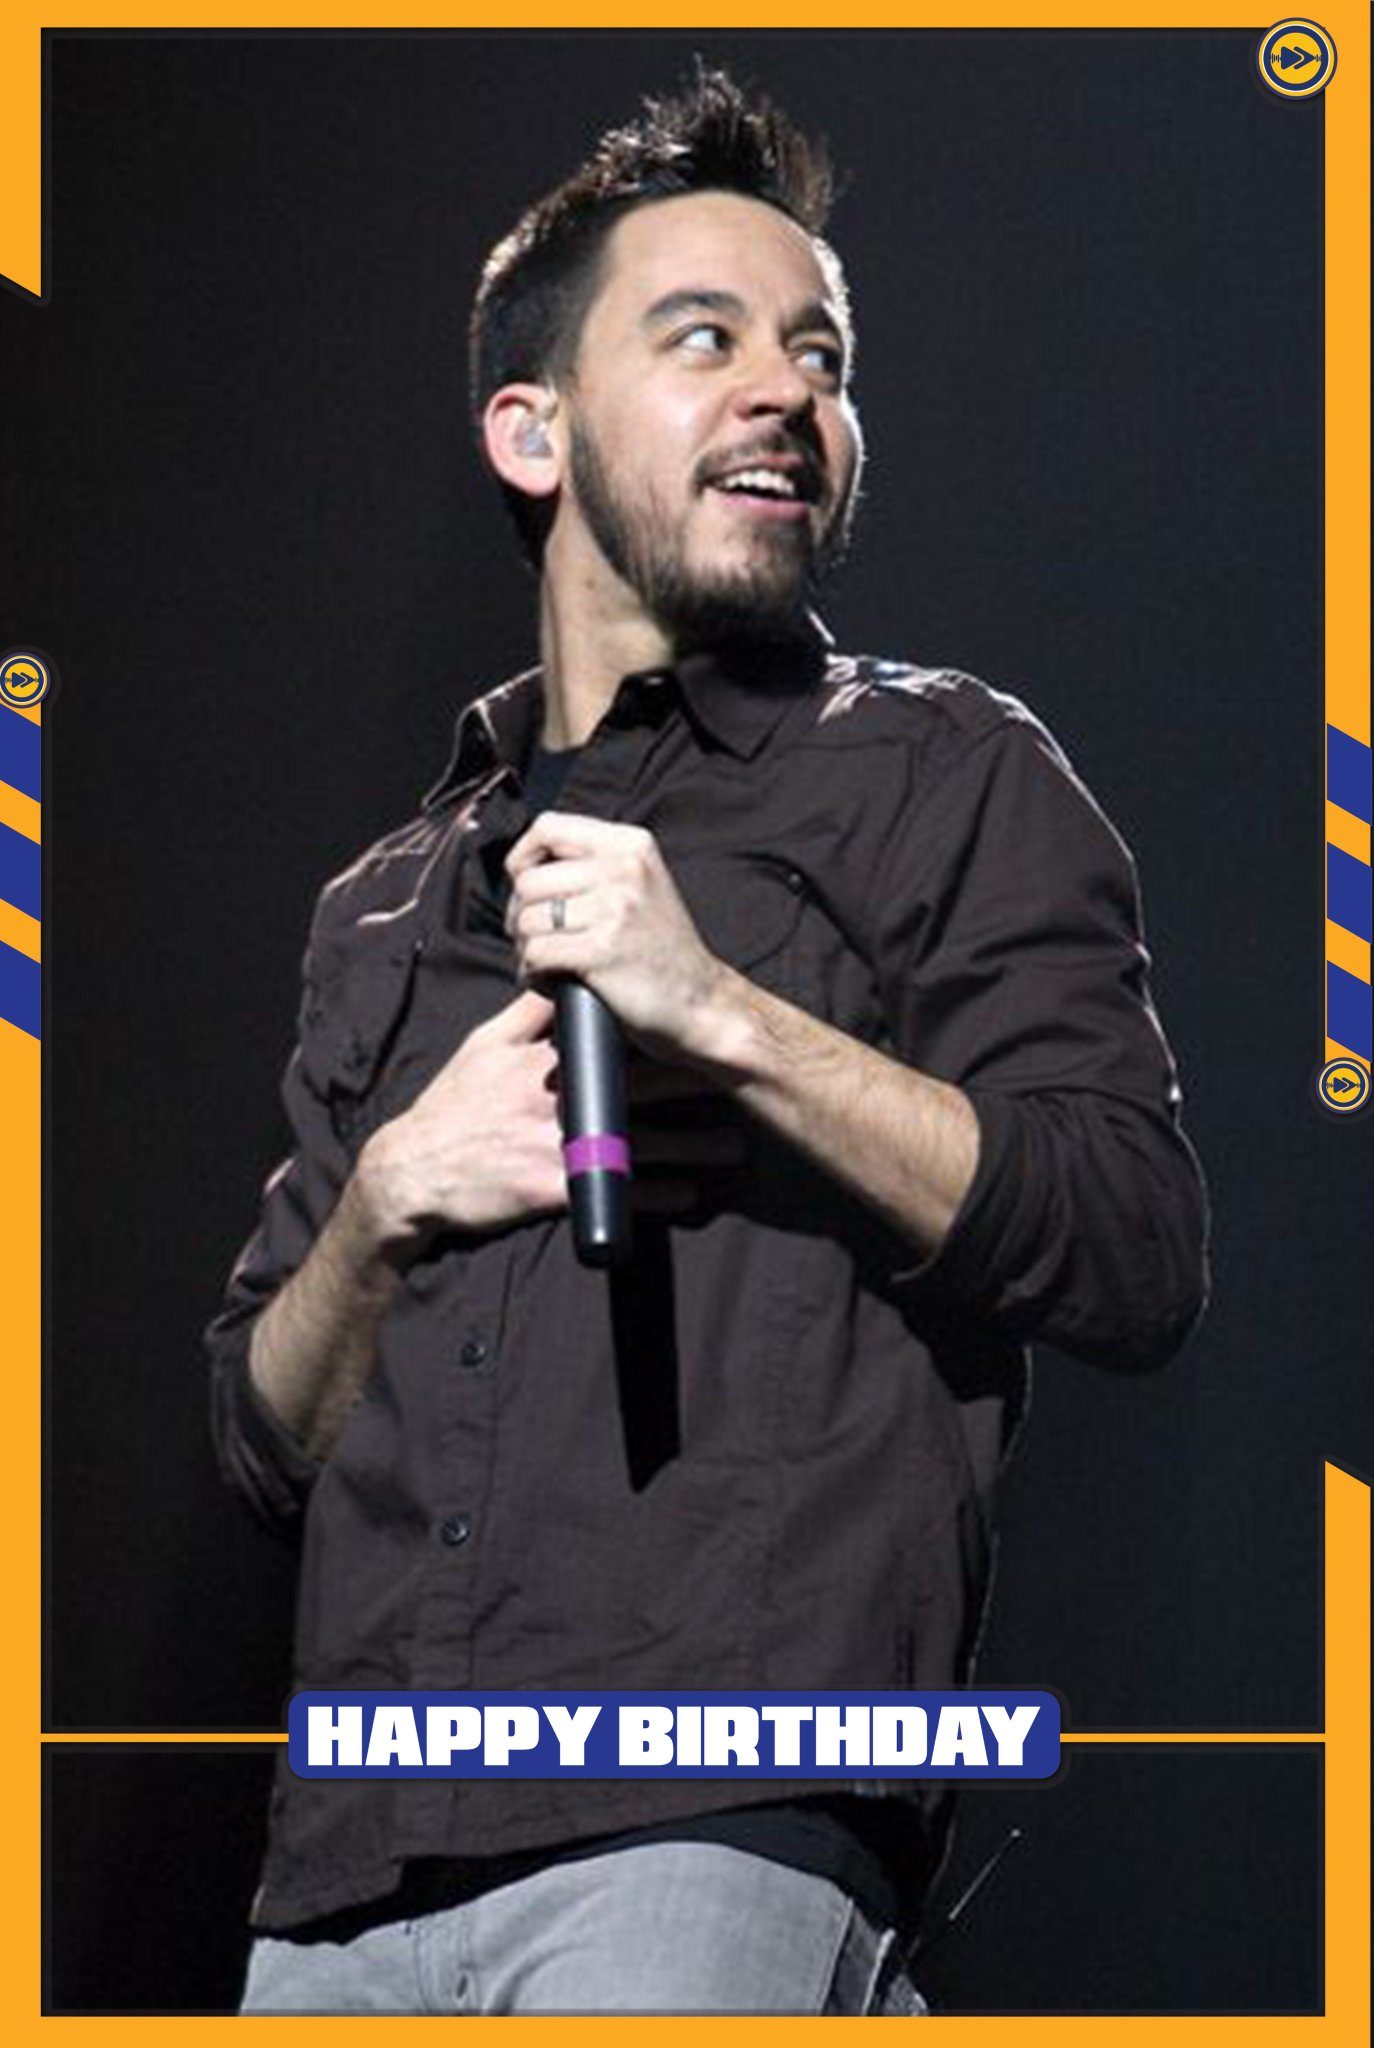 Happy birthday to Mike Shinoda, one of the co founder of the famous band Linkin Park...